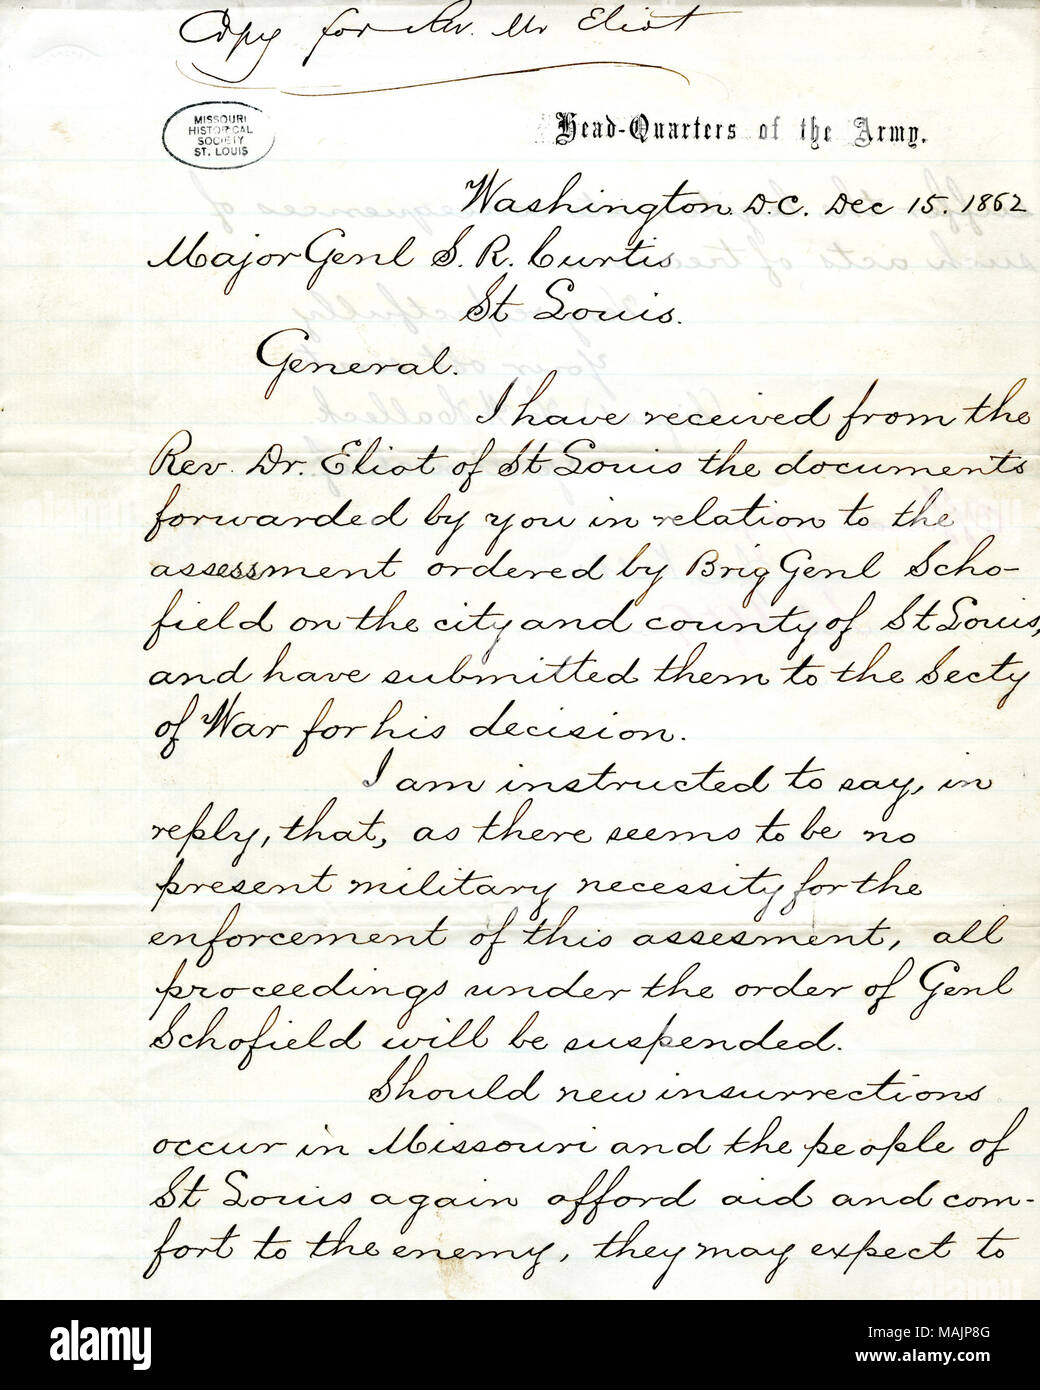 Says that the Secretary of War reviewed the documents 'in relation to the [loyalty] assessment ordered by Brig. General Schofield on the city and county of St. Louis,' says in reply that all such proceedings under Schofield will be suspended because there does not seem to be military necessity for them, and warns that new insurrections against the Union in Missouri may result in legitimate consequences for treason. Title: Official copy of letter of General H.W. Halleck, Head-Quarters of the Army, Washington, D.C., to Major General S.R. Curtis, St. Louis, December 15, 1862  . 15 December 1862.  - Stock Image